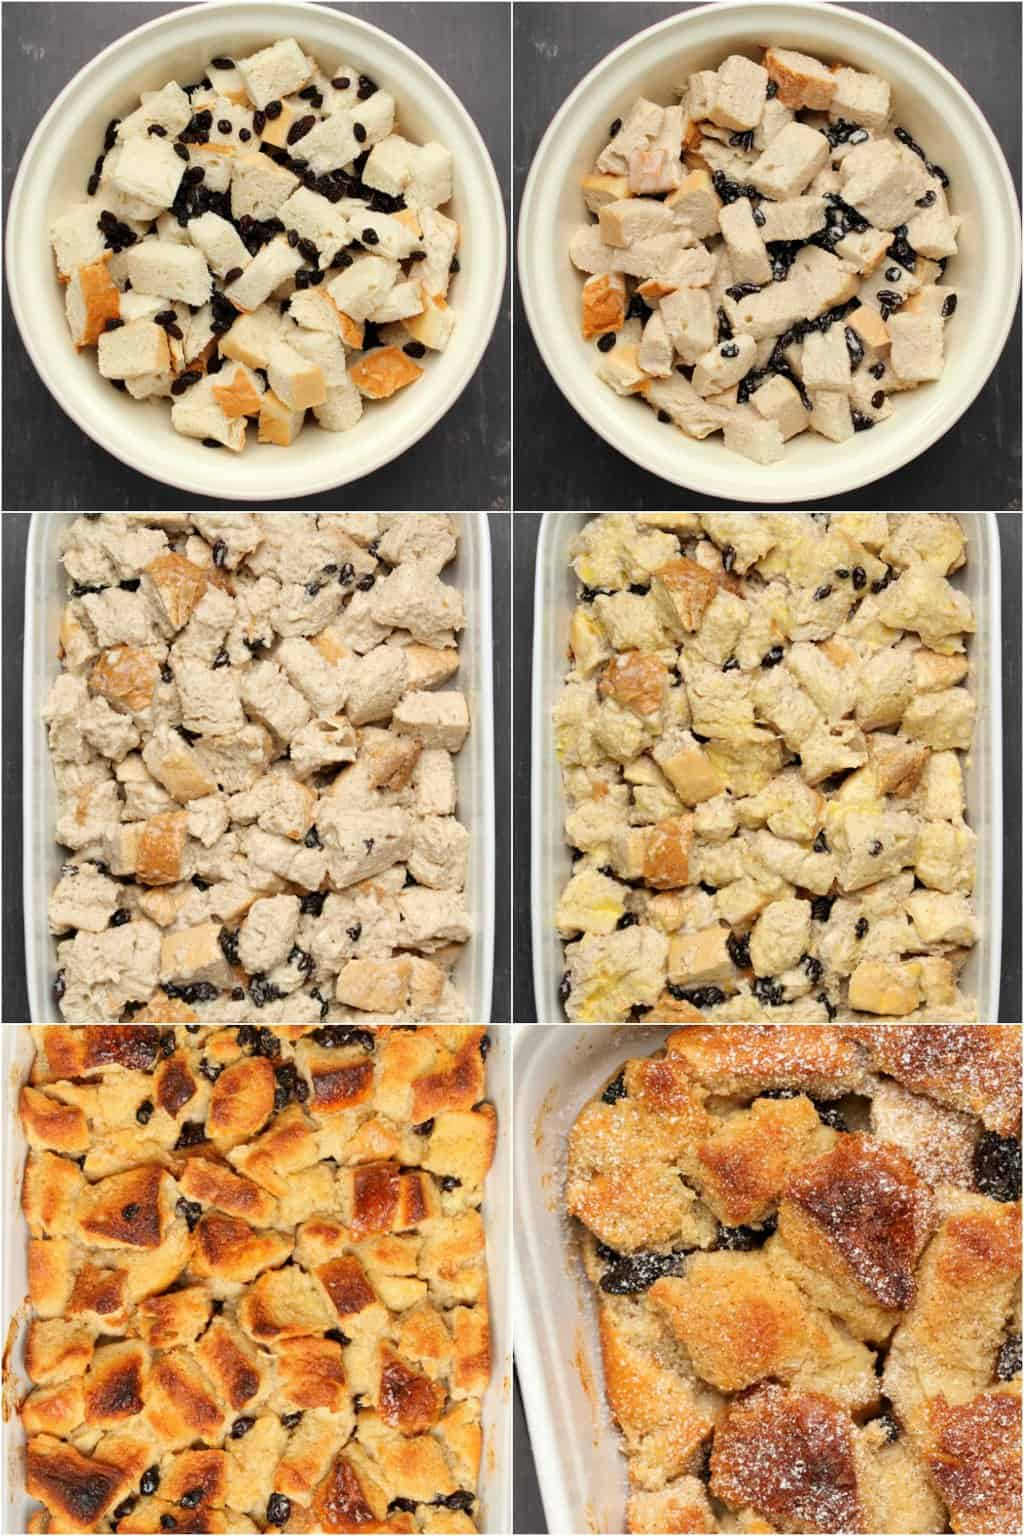 Step by step process photo collage of making vegan bread pudding.